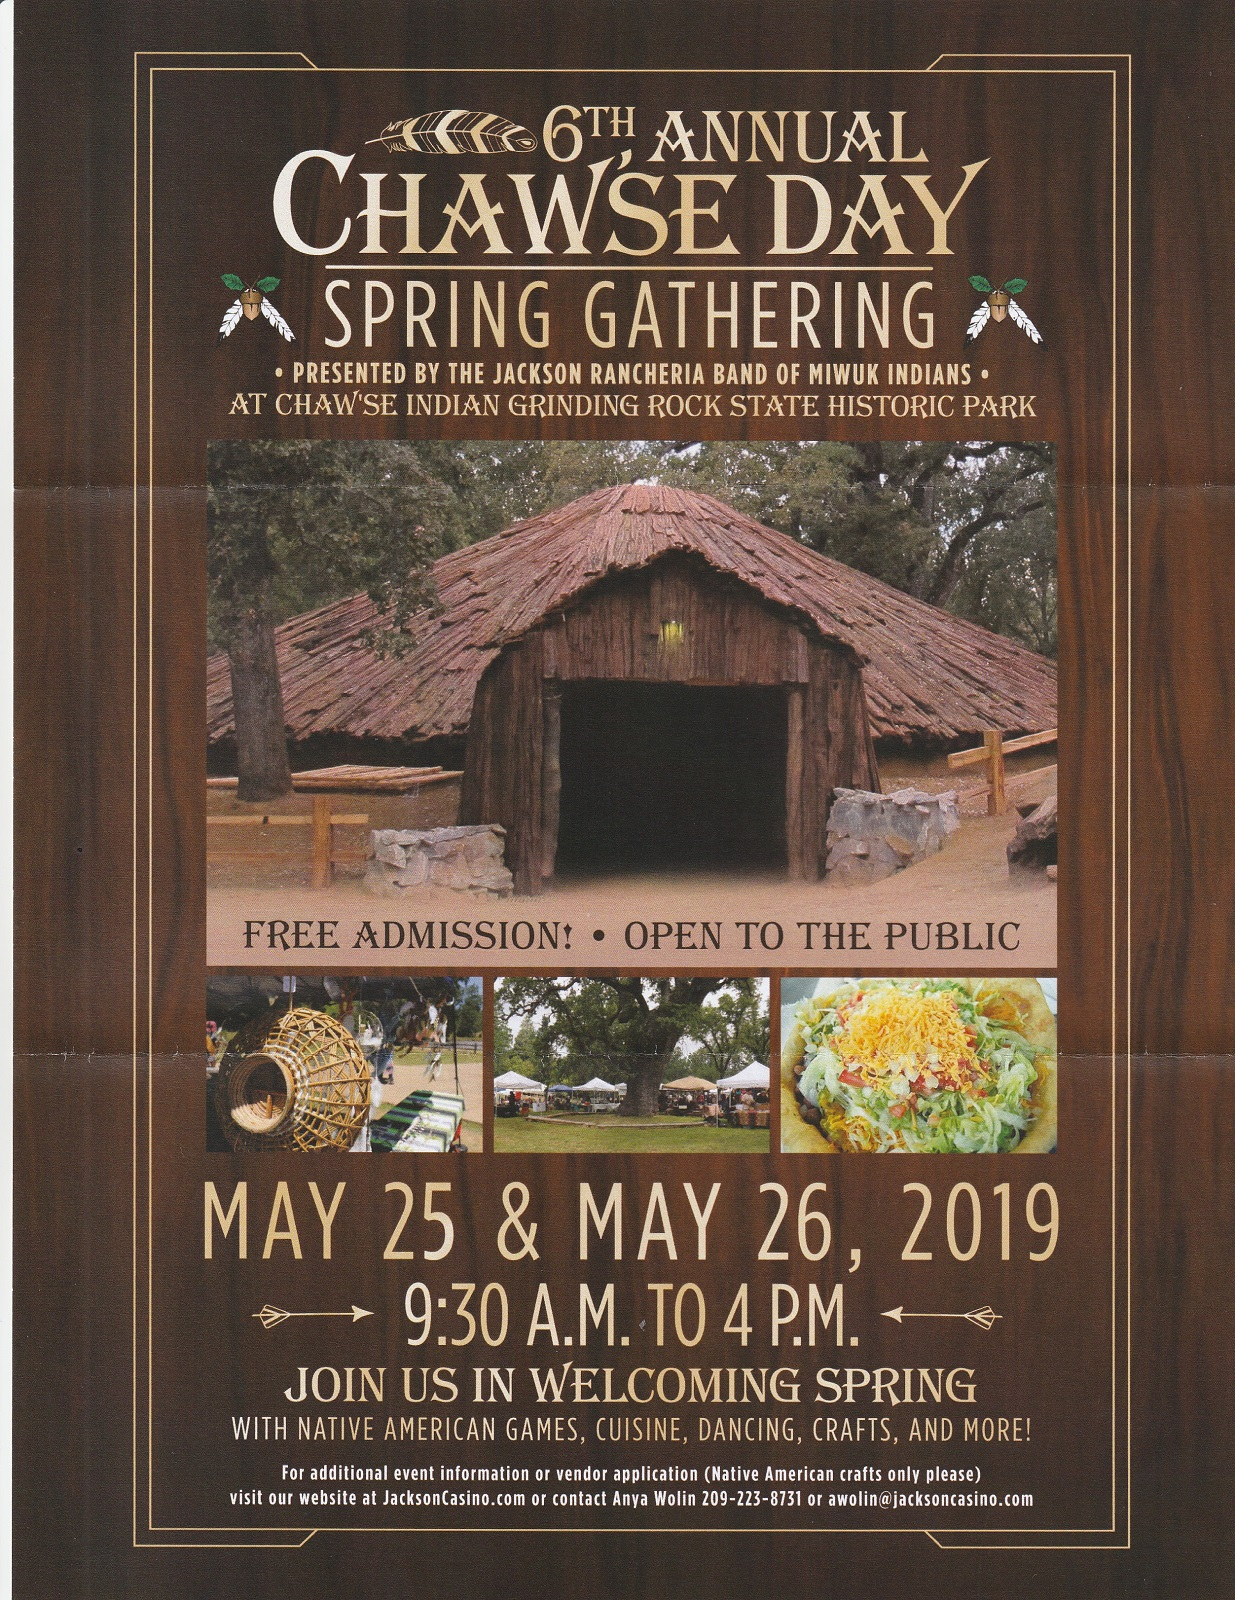 6th, Annual Chaw'se Day Spring Gathering, May 26th-27th, Pine Grove, Ca.